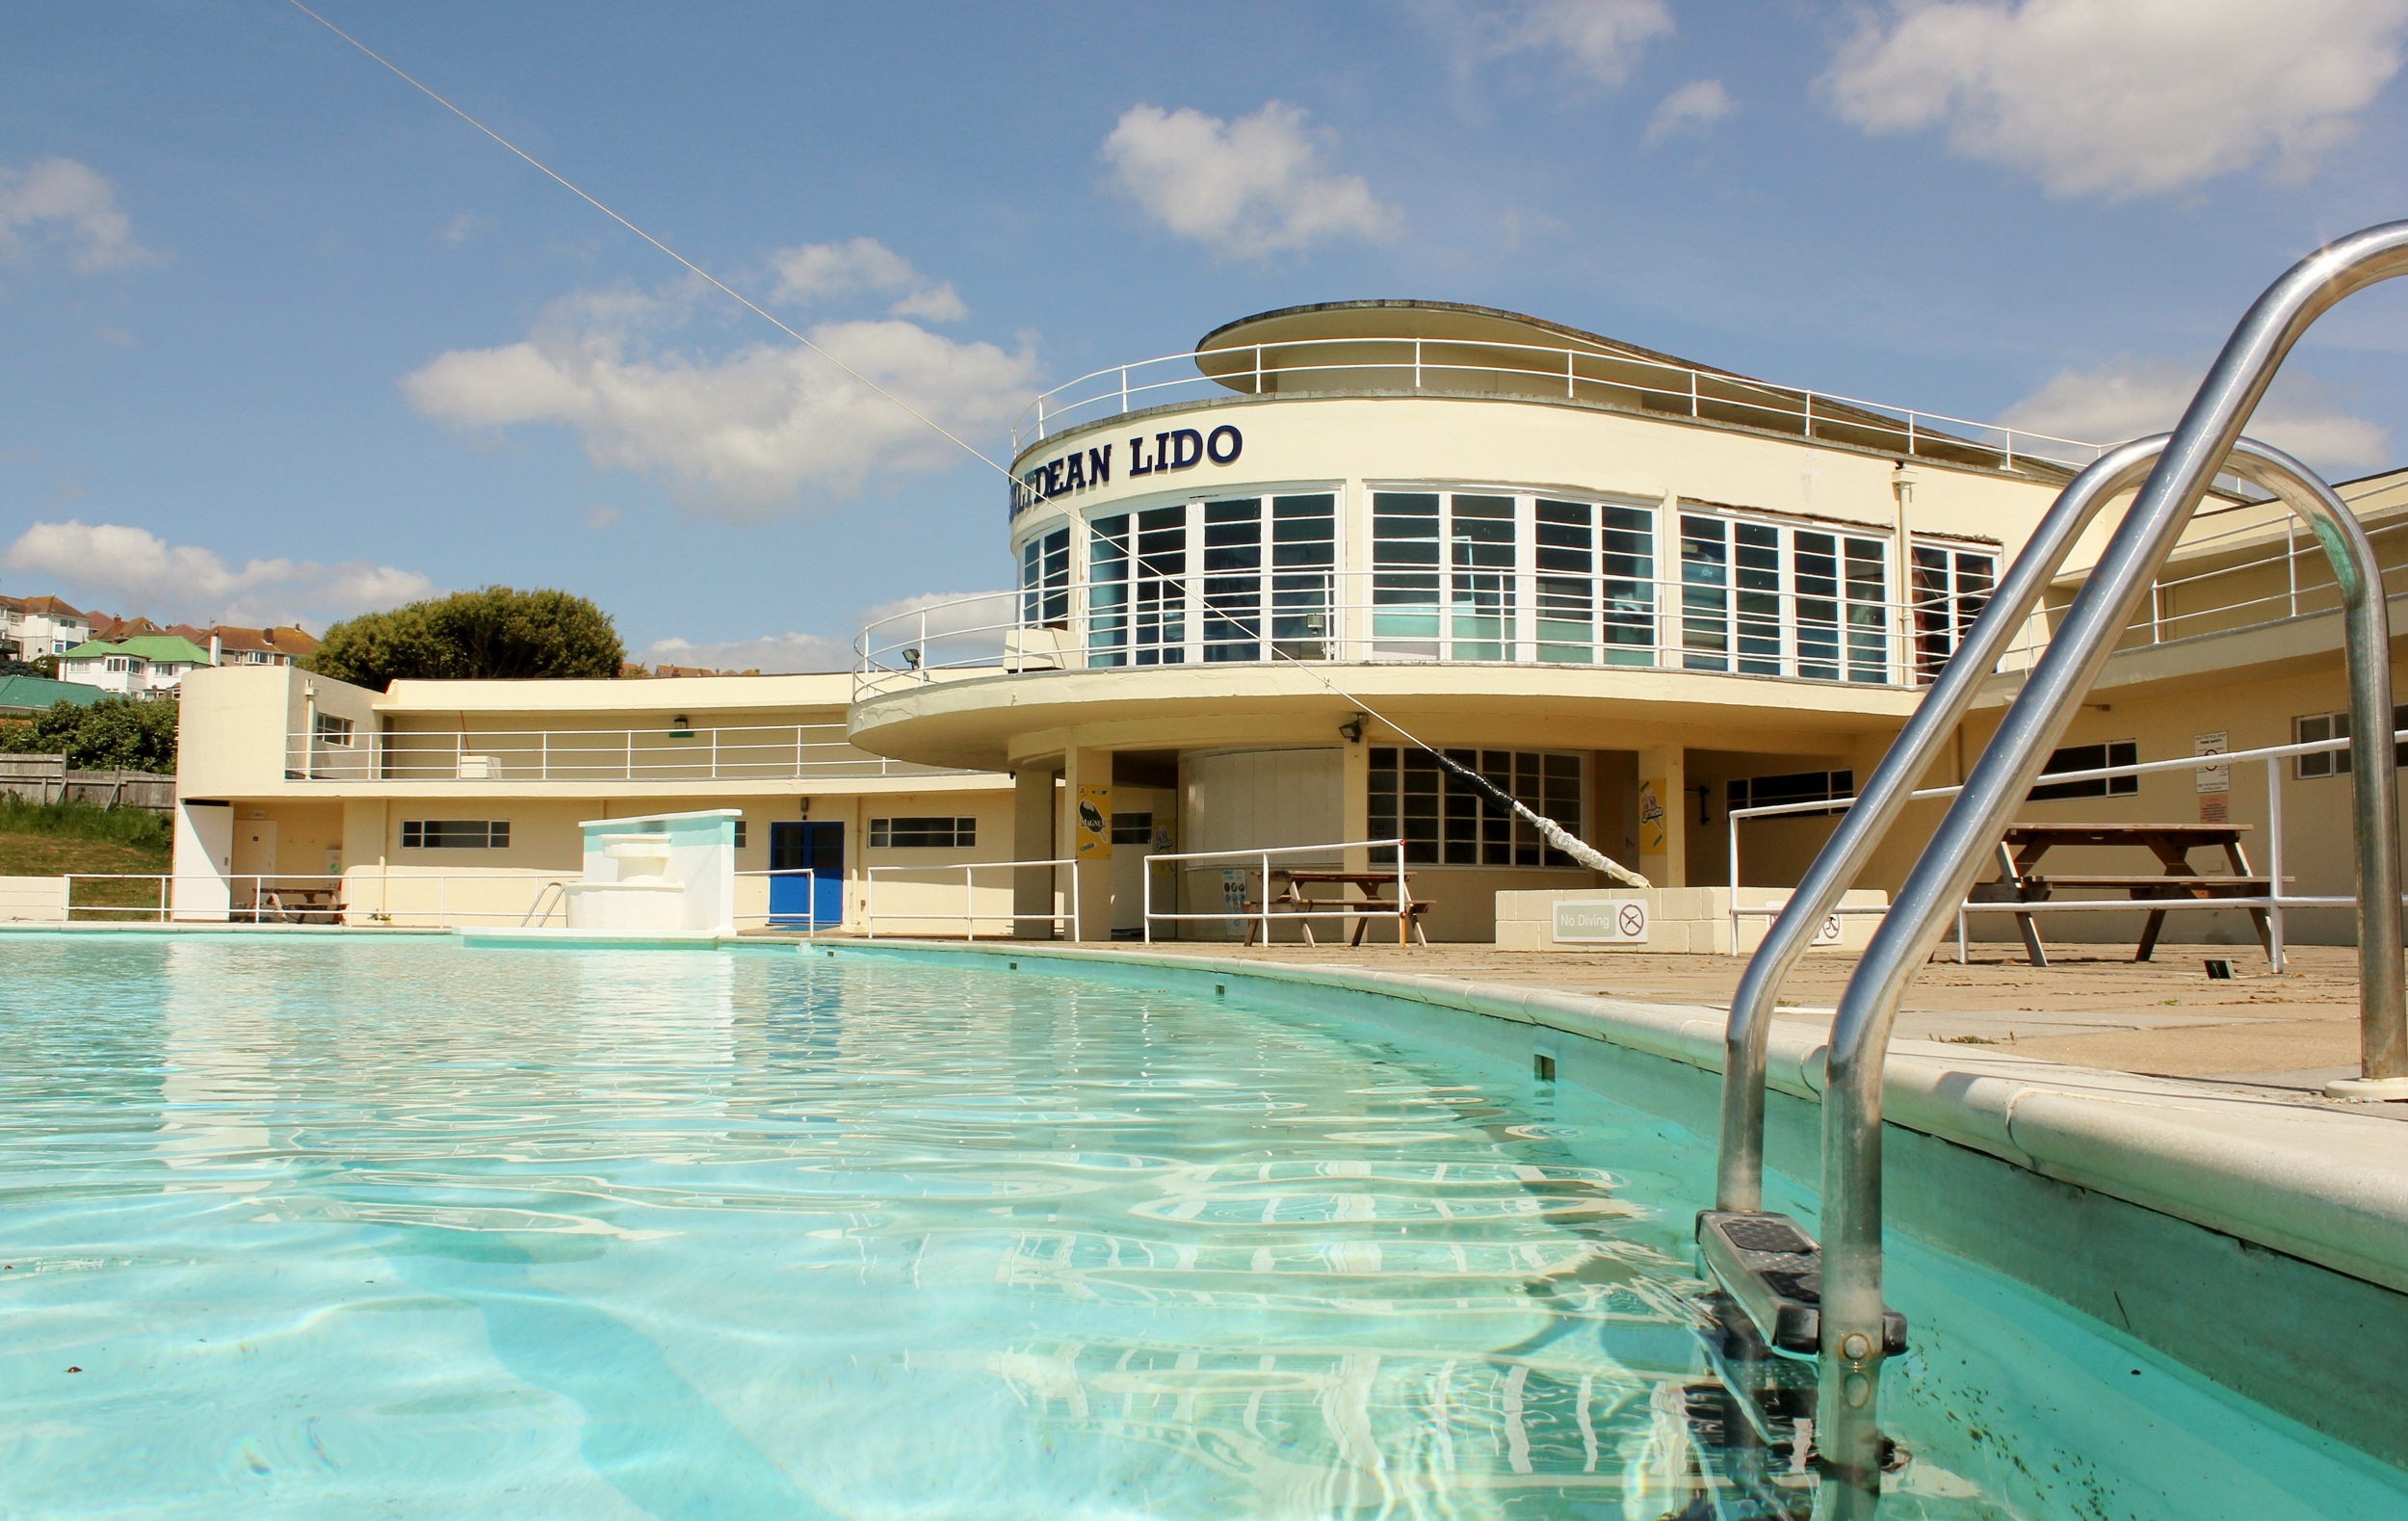 Saltdean Lido hopes to raise £70,000 towards renovations, partly funded by the 'Name on a Brick' initiative